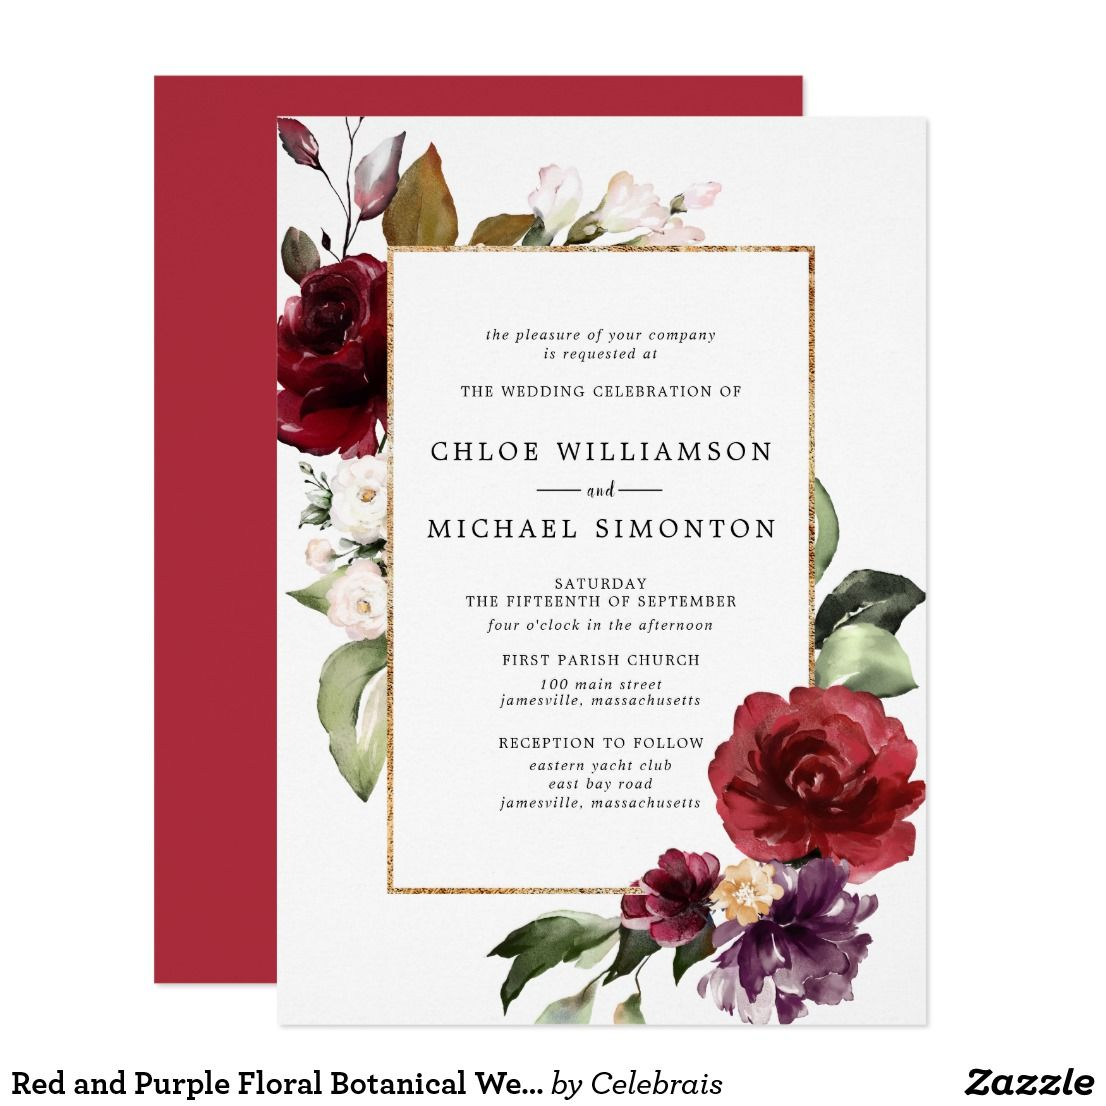 Red and Purple Floral Botanical Wedding Invitation | Wedding ...